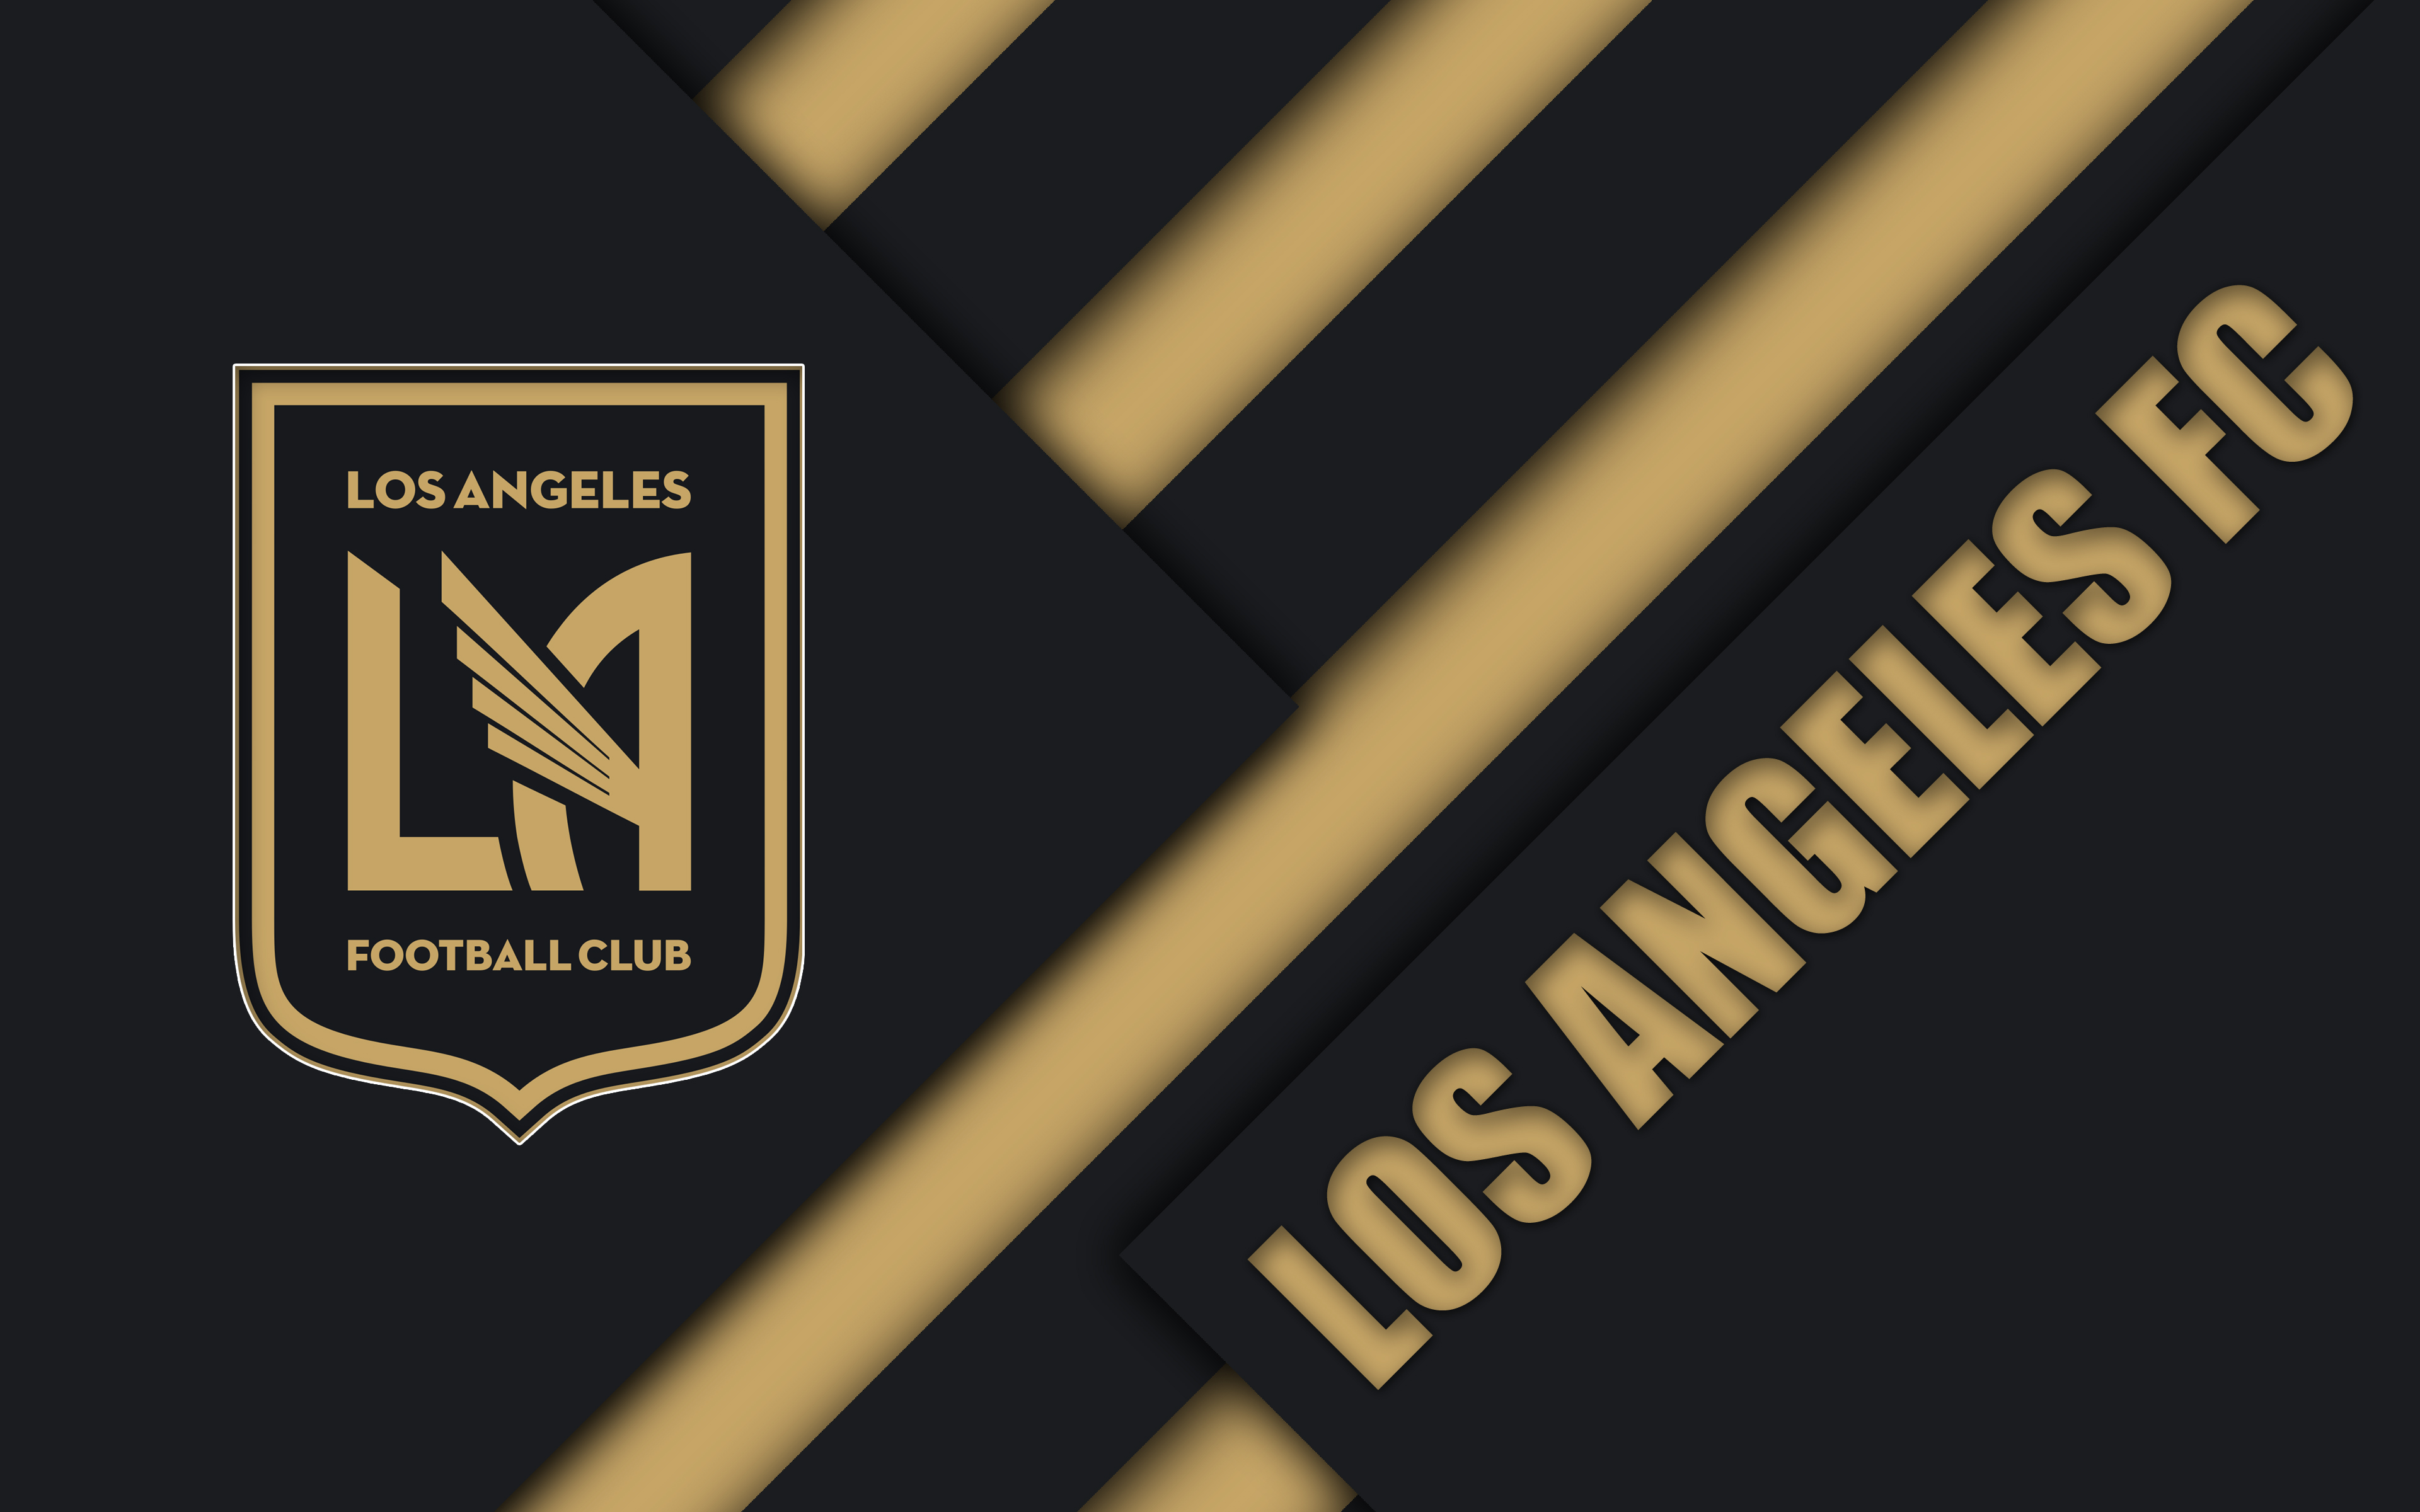 Soccer, Los Angeles FC, MLS, Logo wallpaper and background